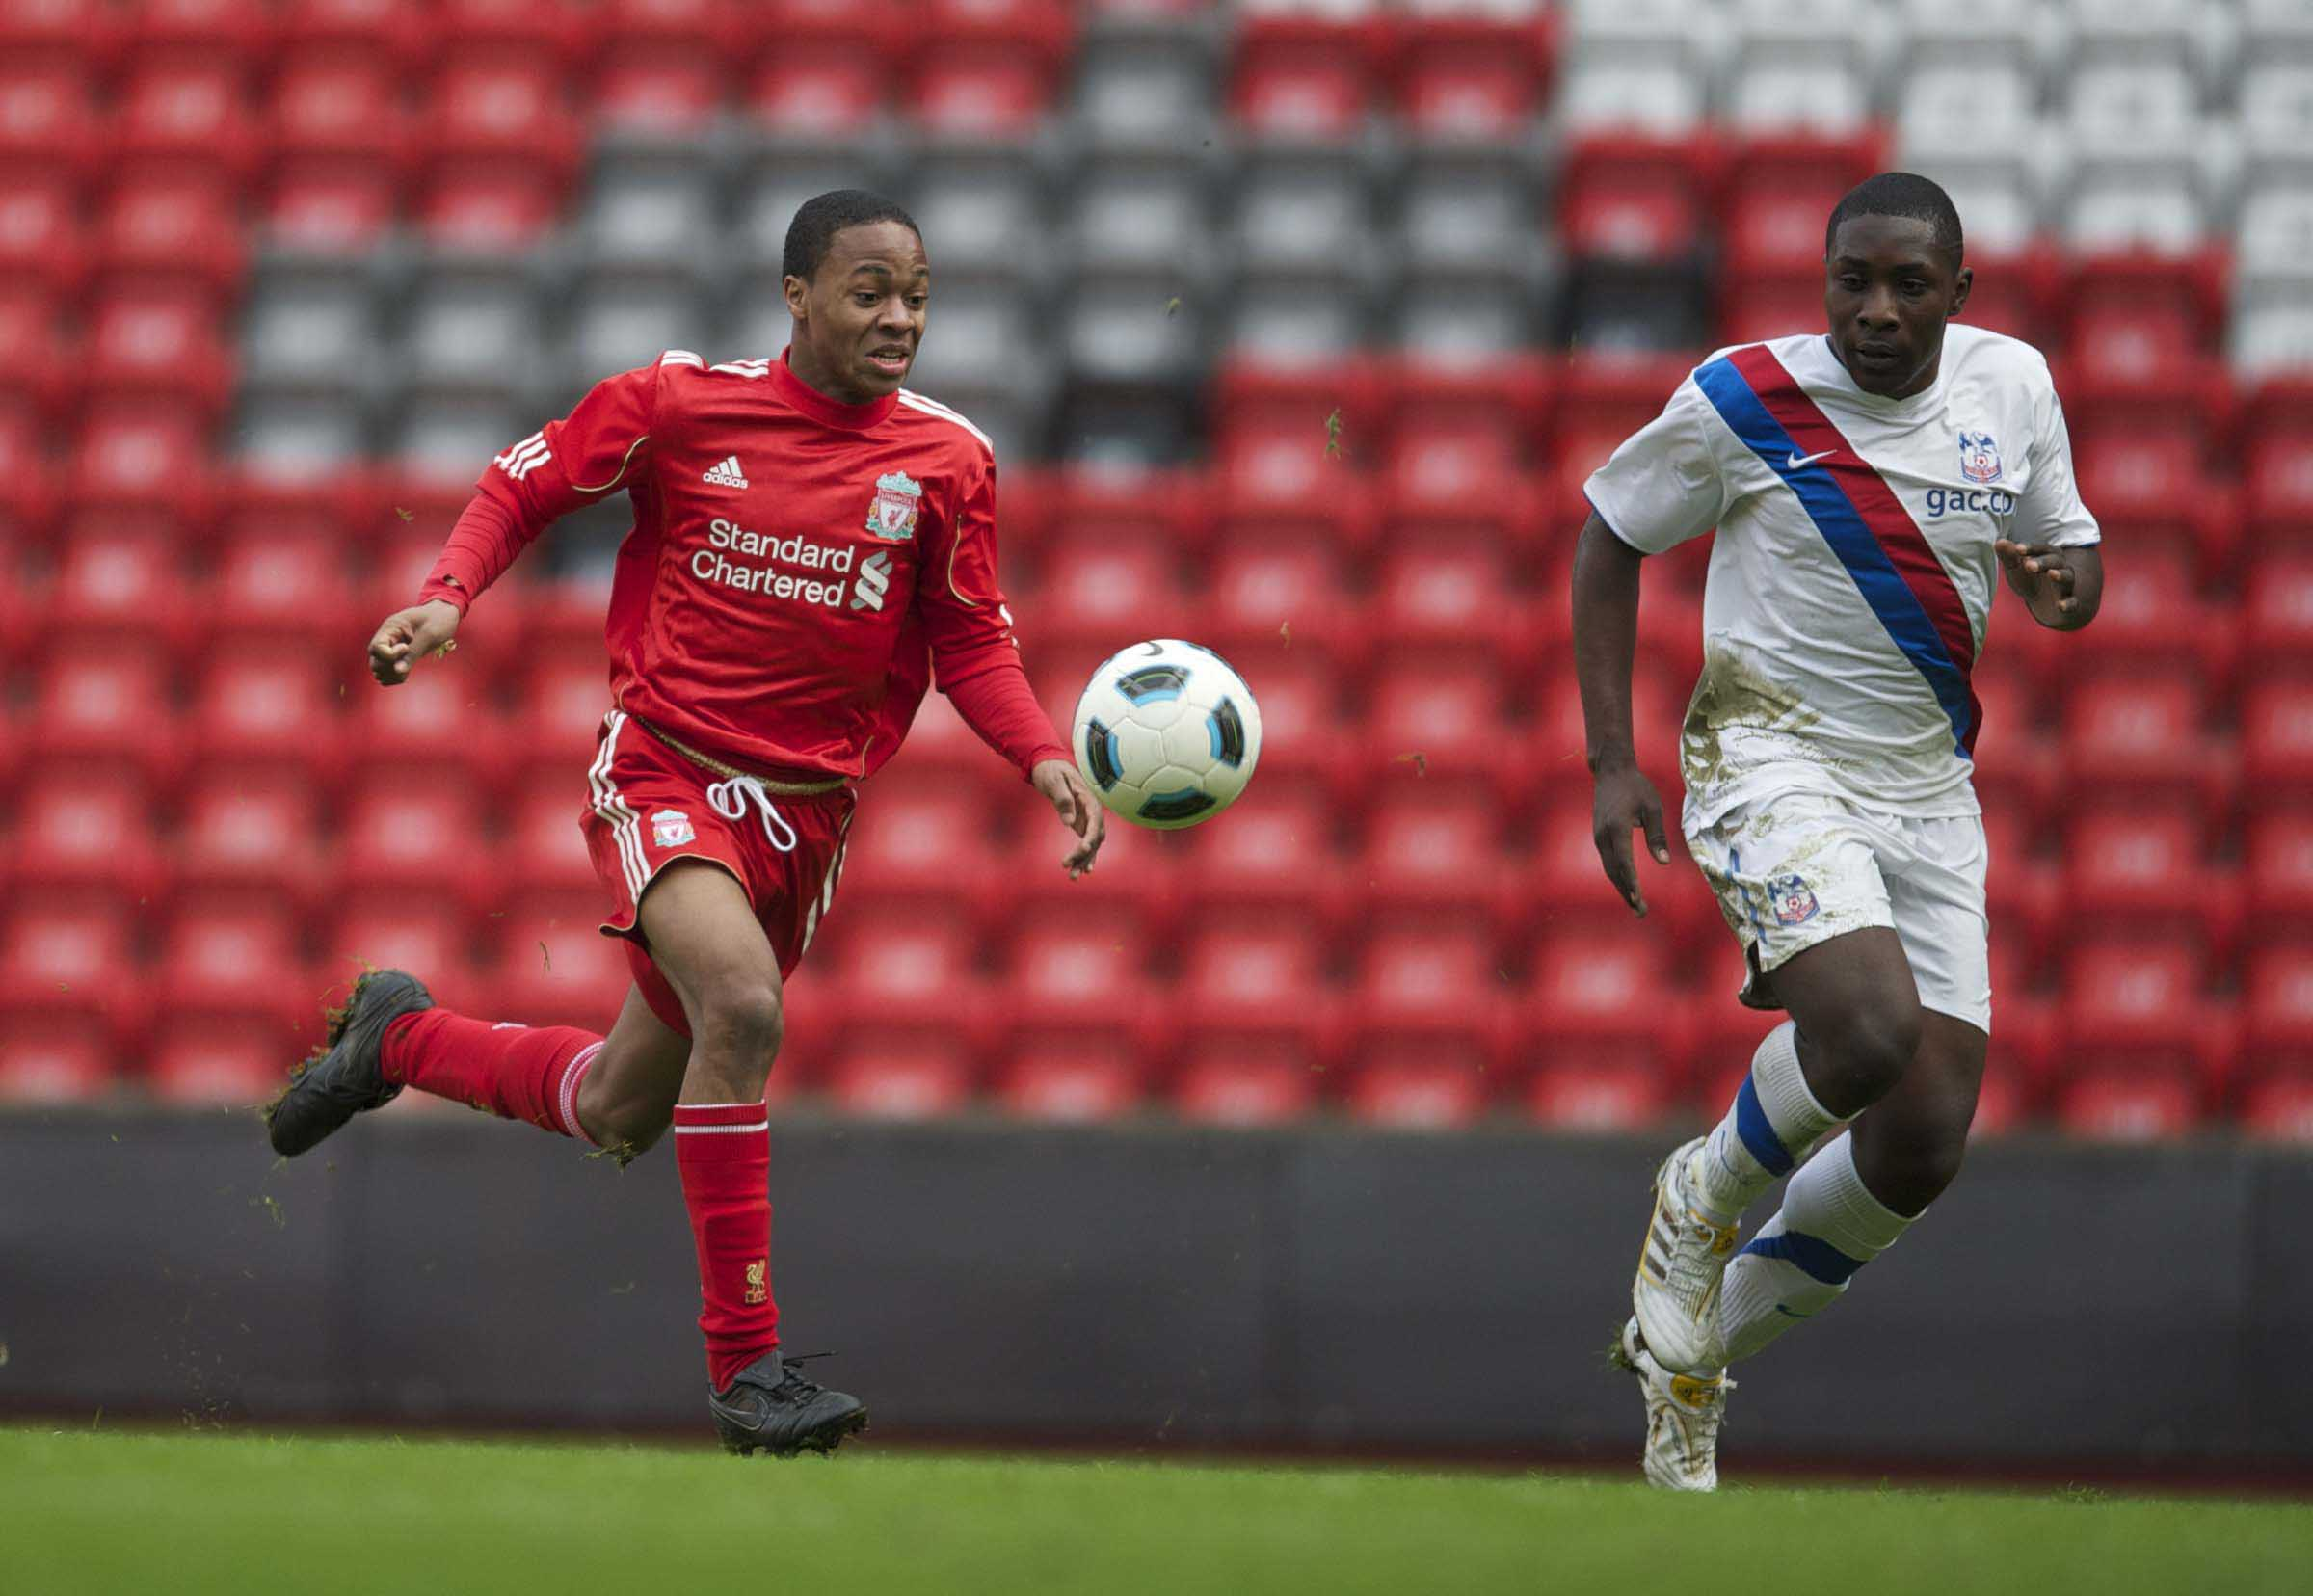 Football - FA Youth Cup - 4th Round - Liverpool FC v Crystal Palace FC